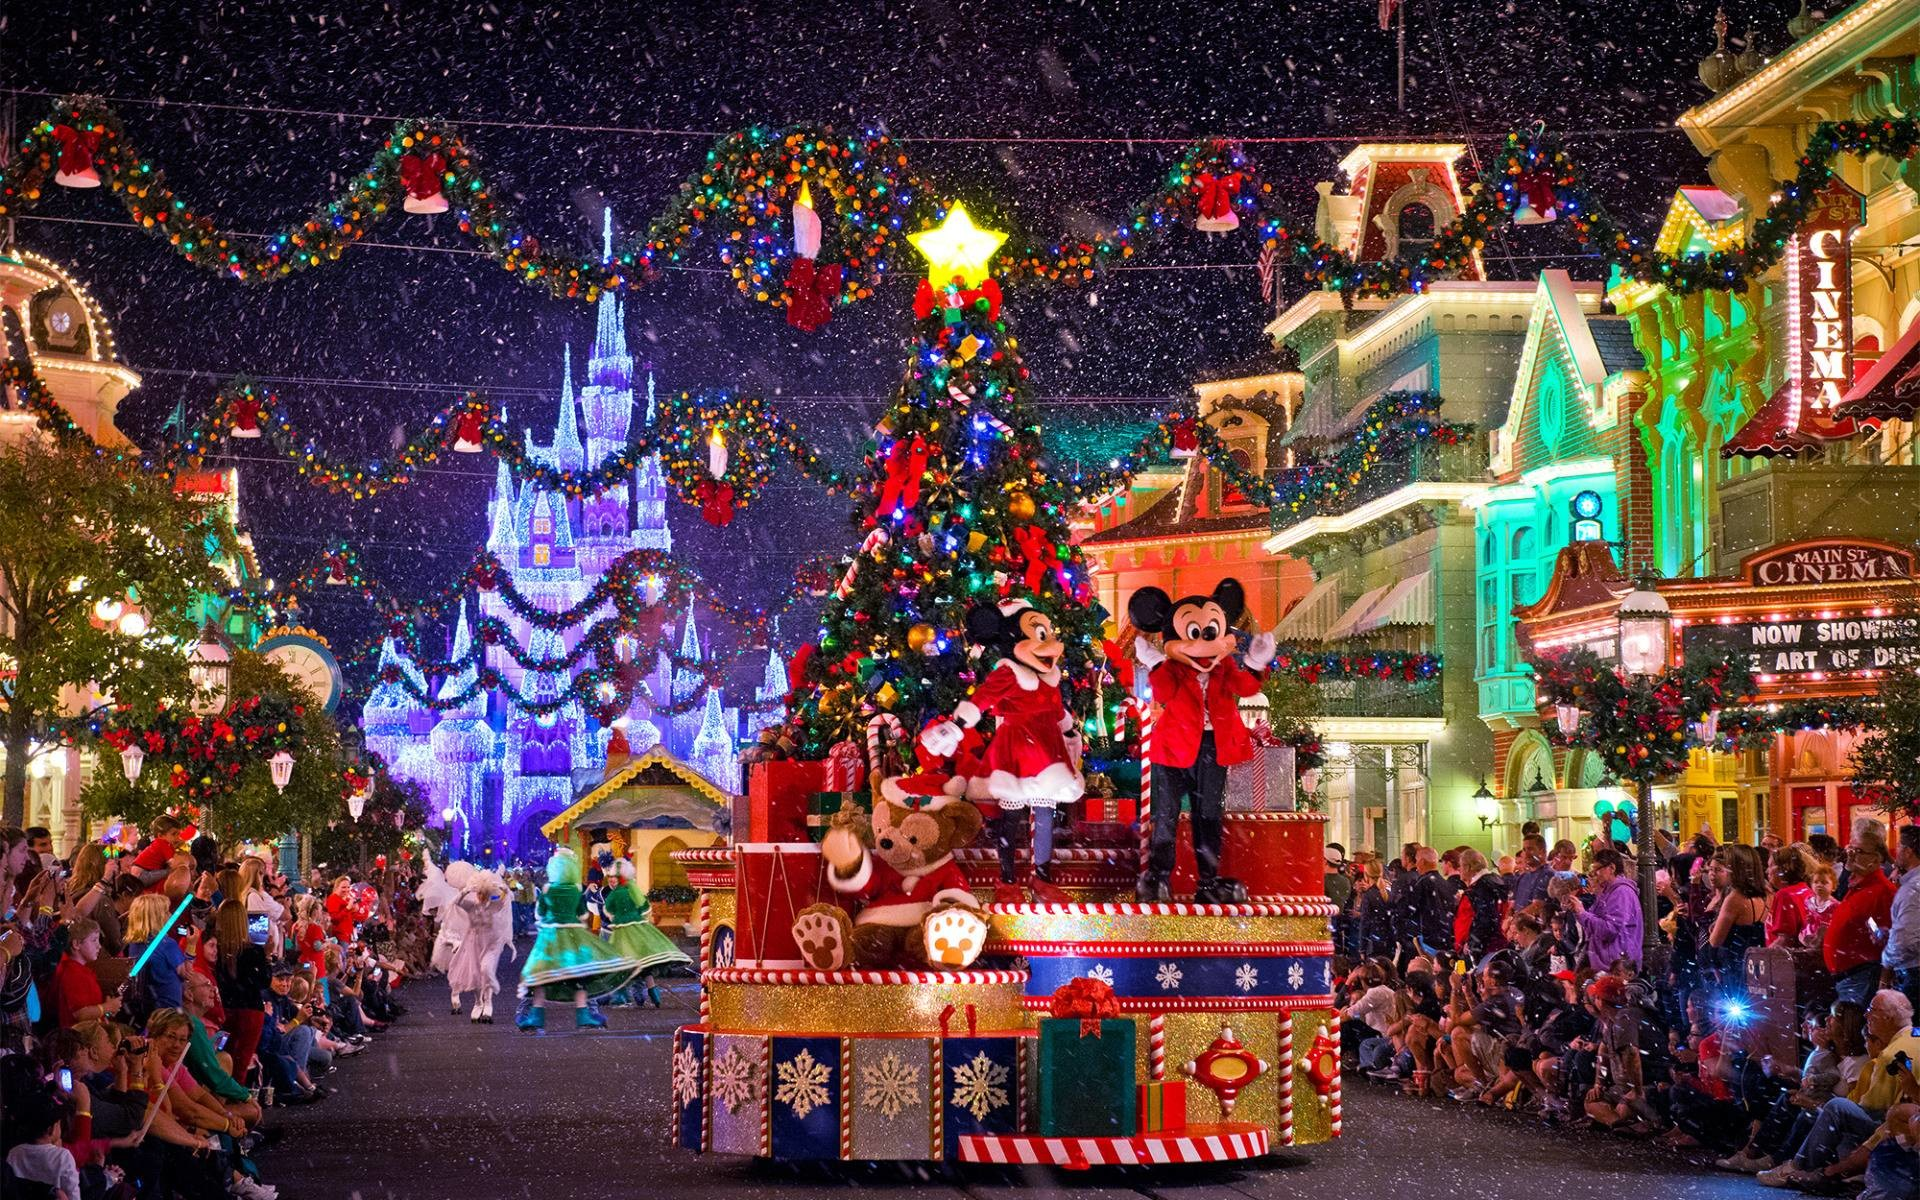 1920x1200 Disney Christmas Parade On Main Street Widescreen Wallpaper